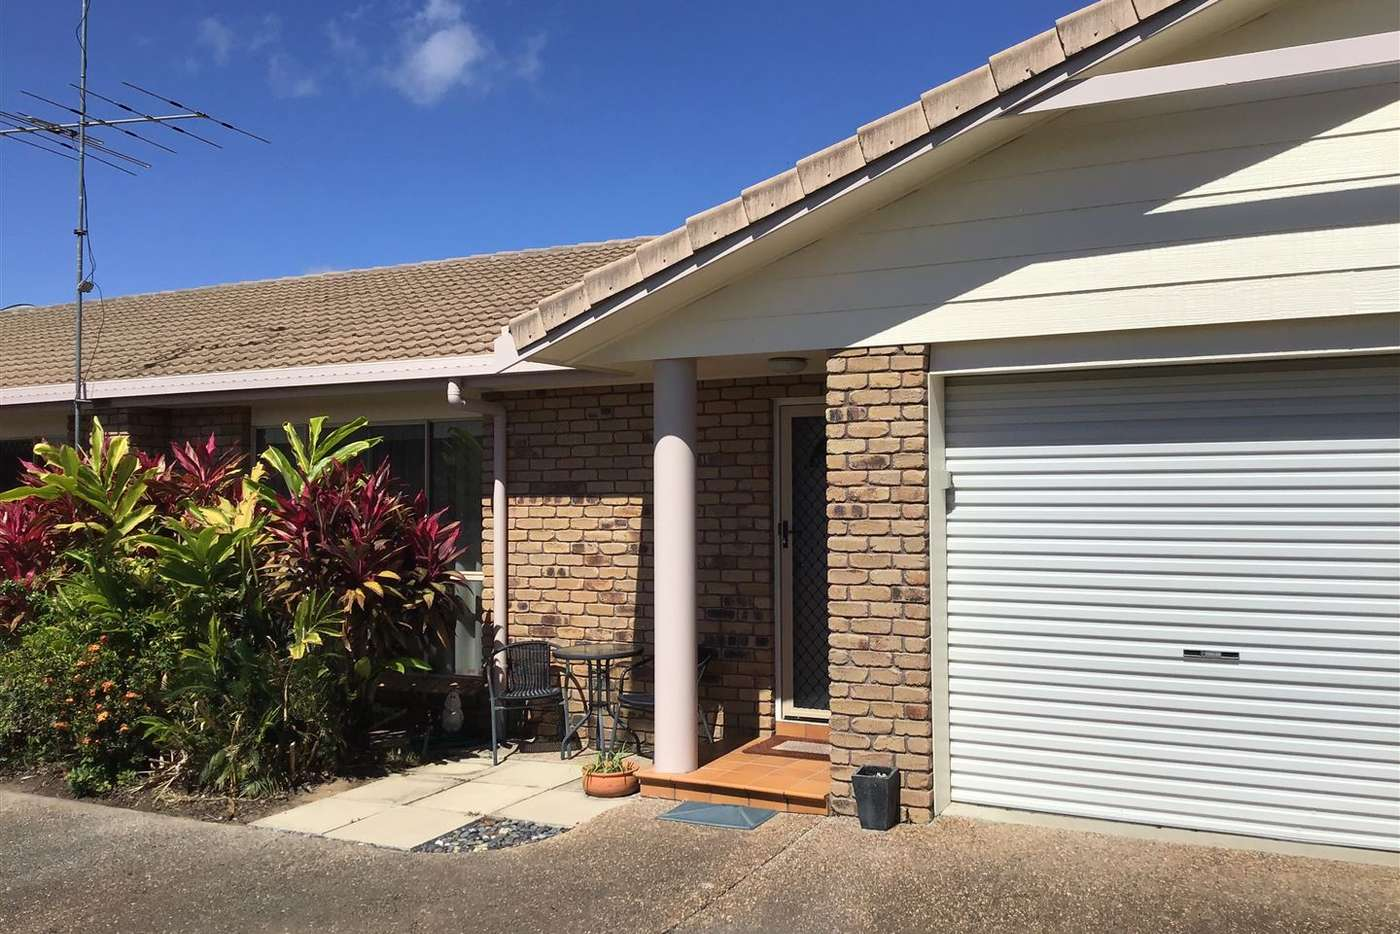 Main view of Homely unit listing, 3/135 Graham Street, Ayr QLD 4807